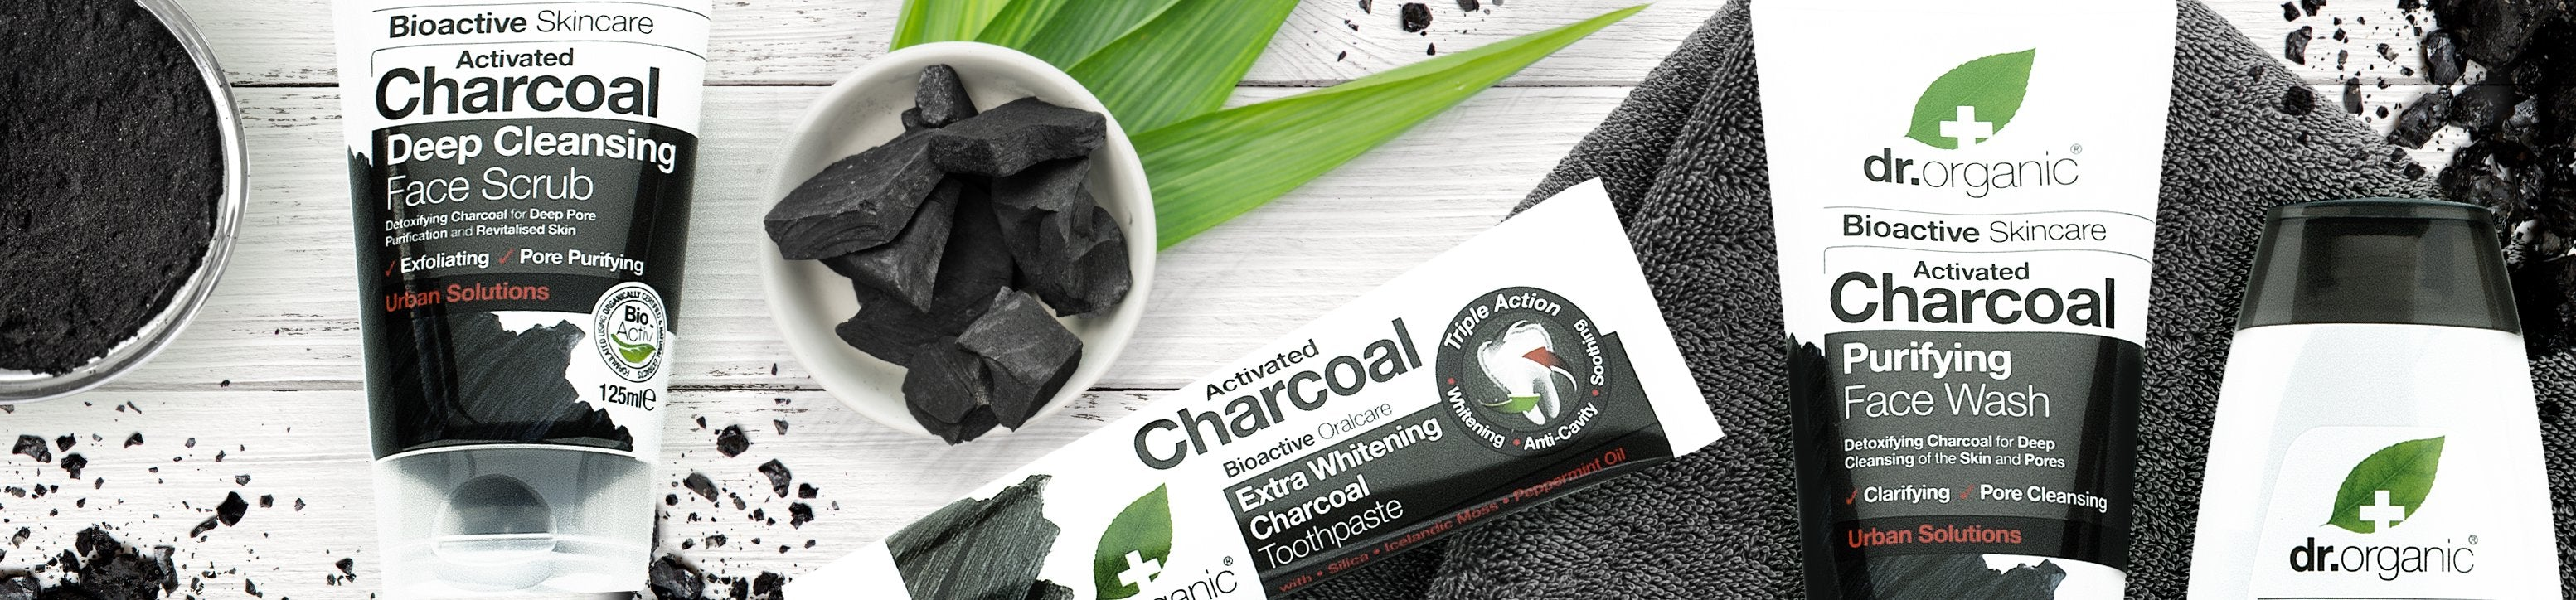 Dr Organic | MVMNT LMTD | Activated Charcoal | Australia